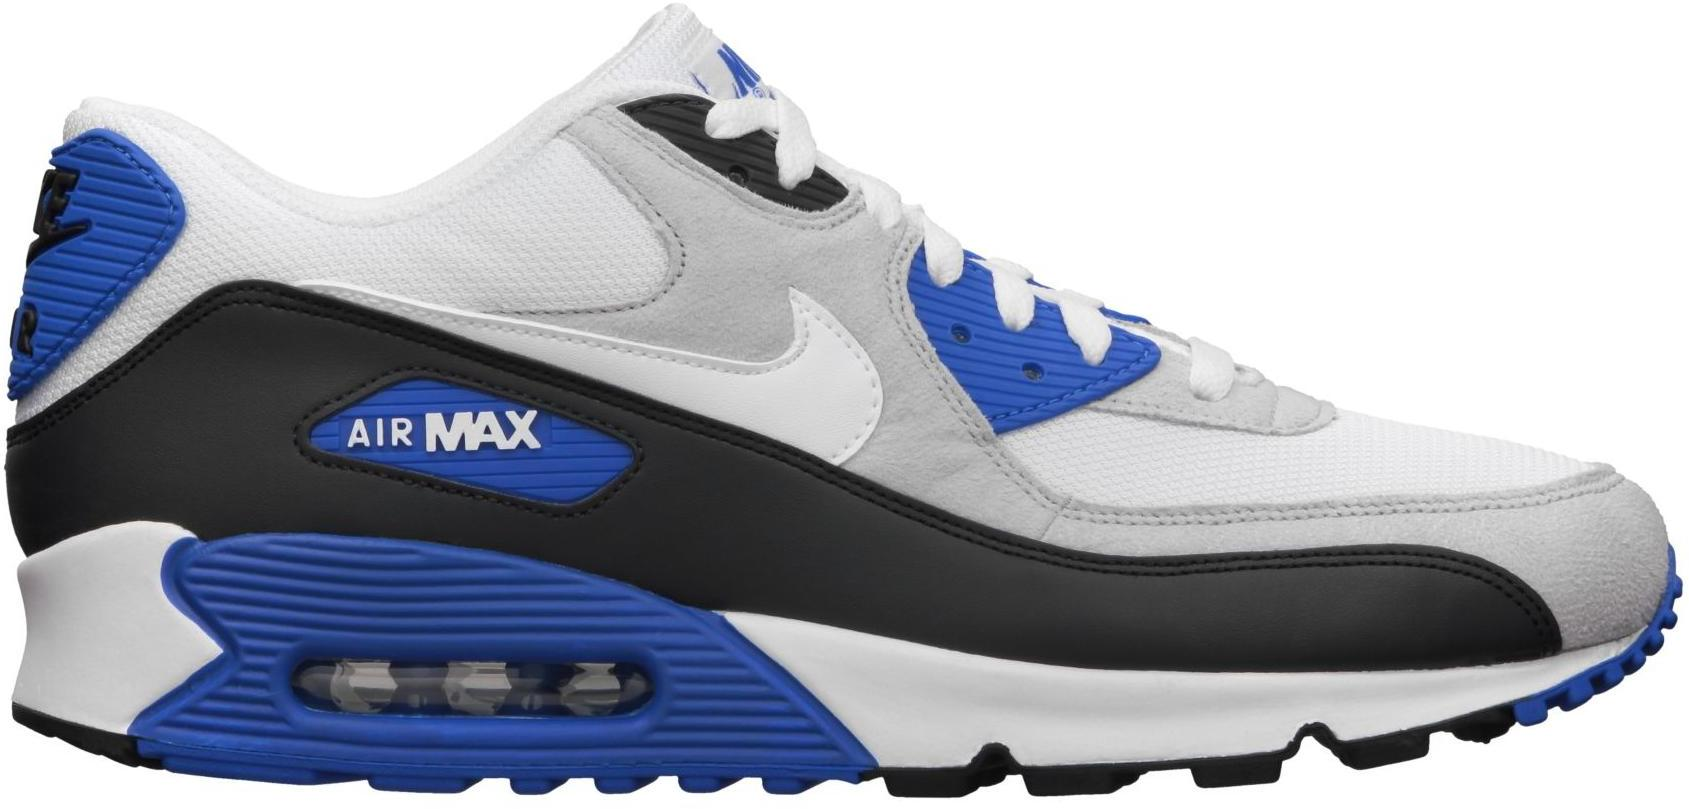 Nike Air Max 90 Anthracite Obsidian - 325018-050